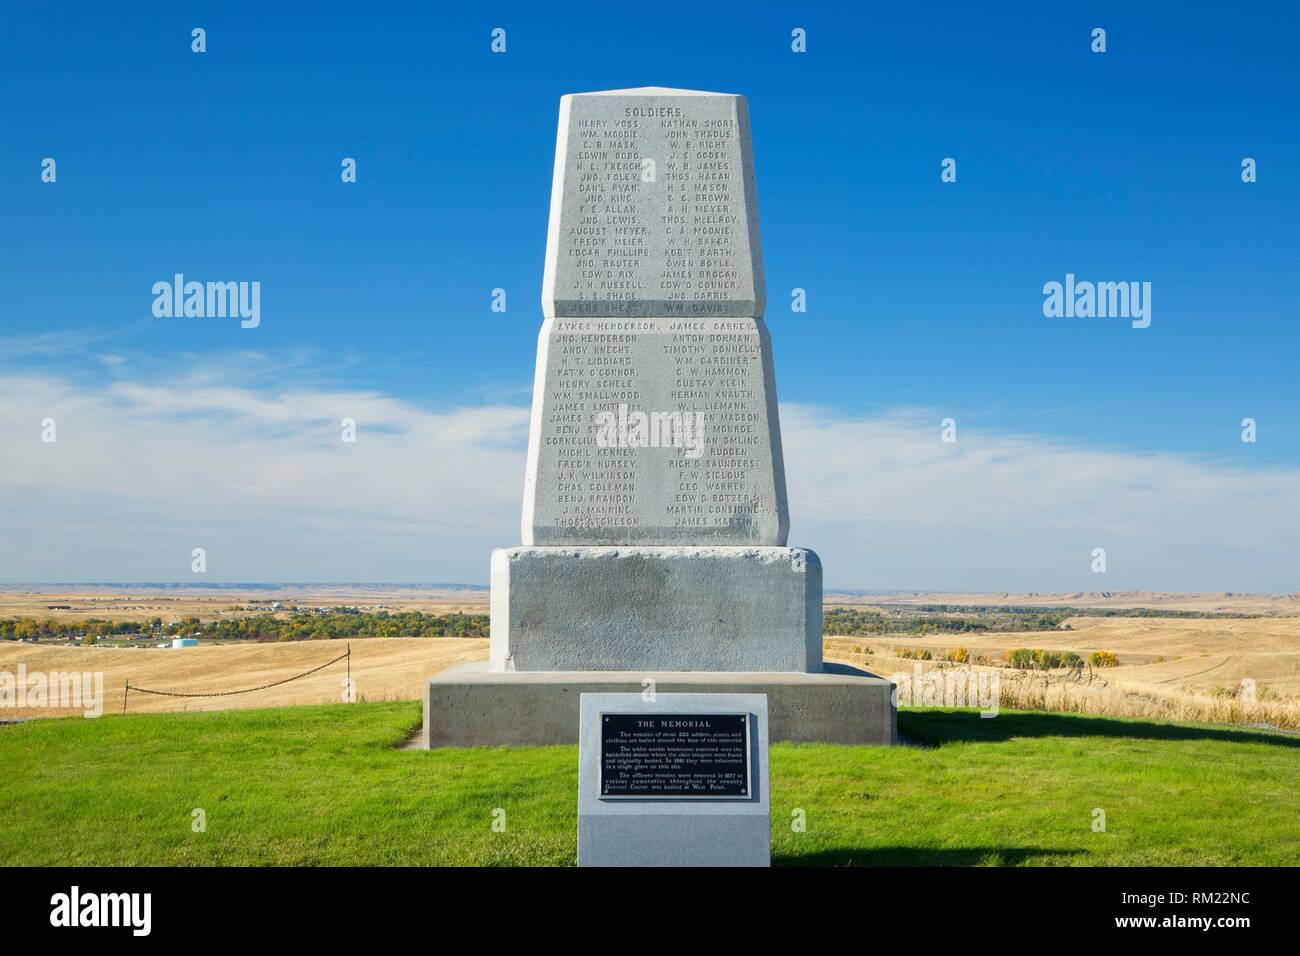 7th Cavalry Memorial, Little Bighorn Battlefield National Monument, Montana. - Stock Image